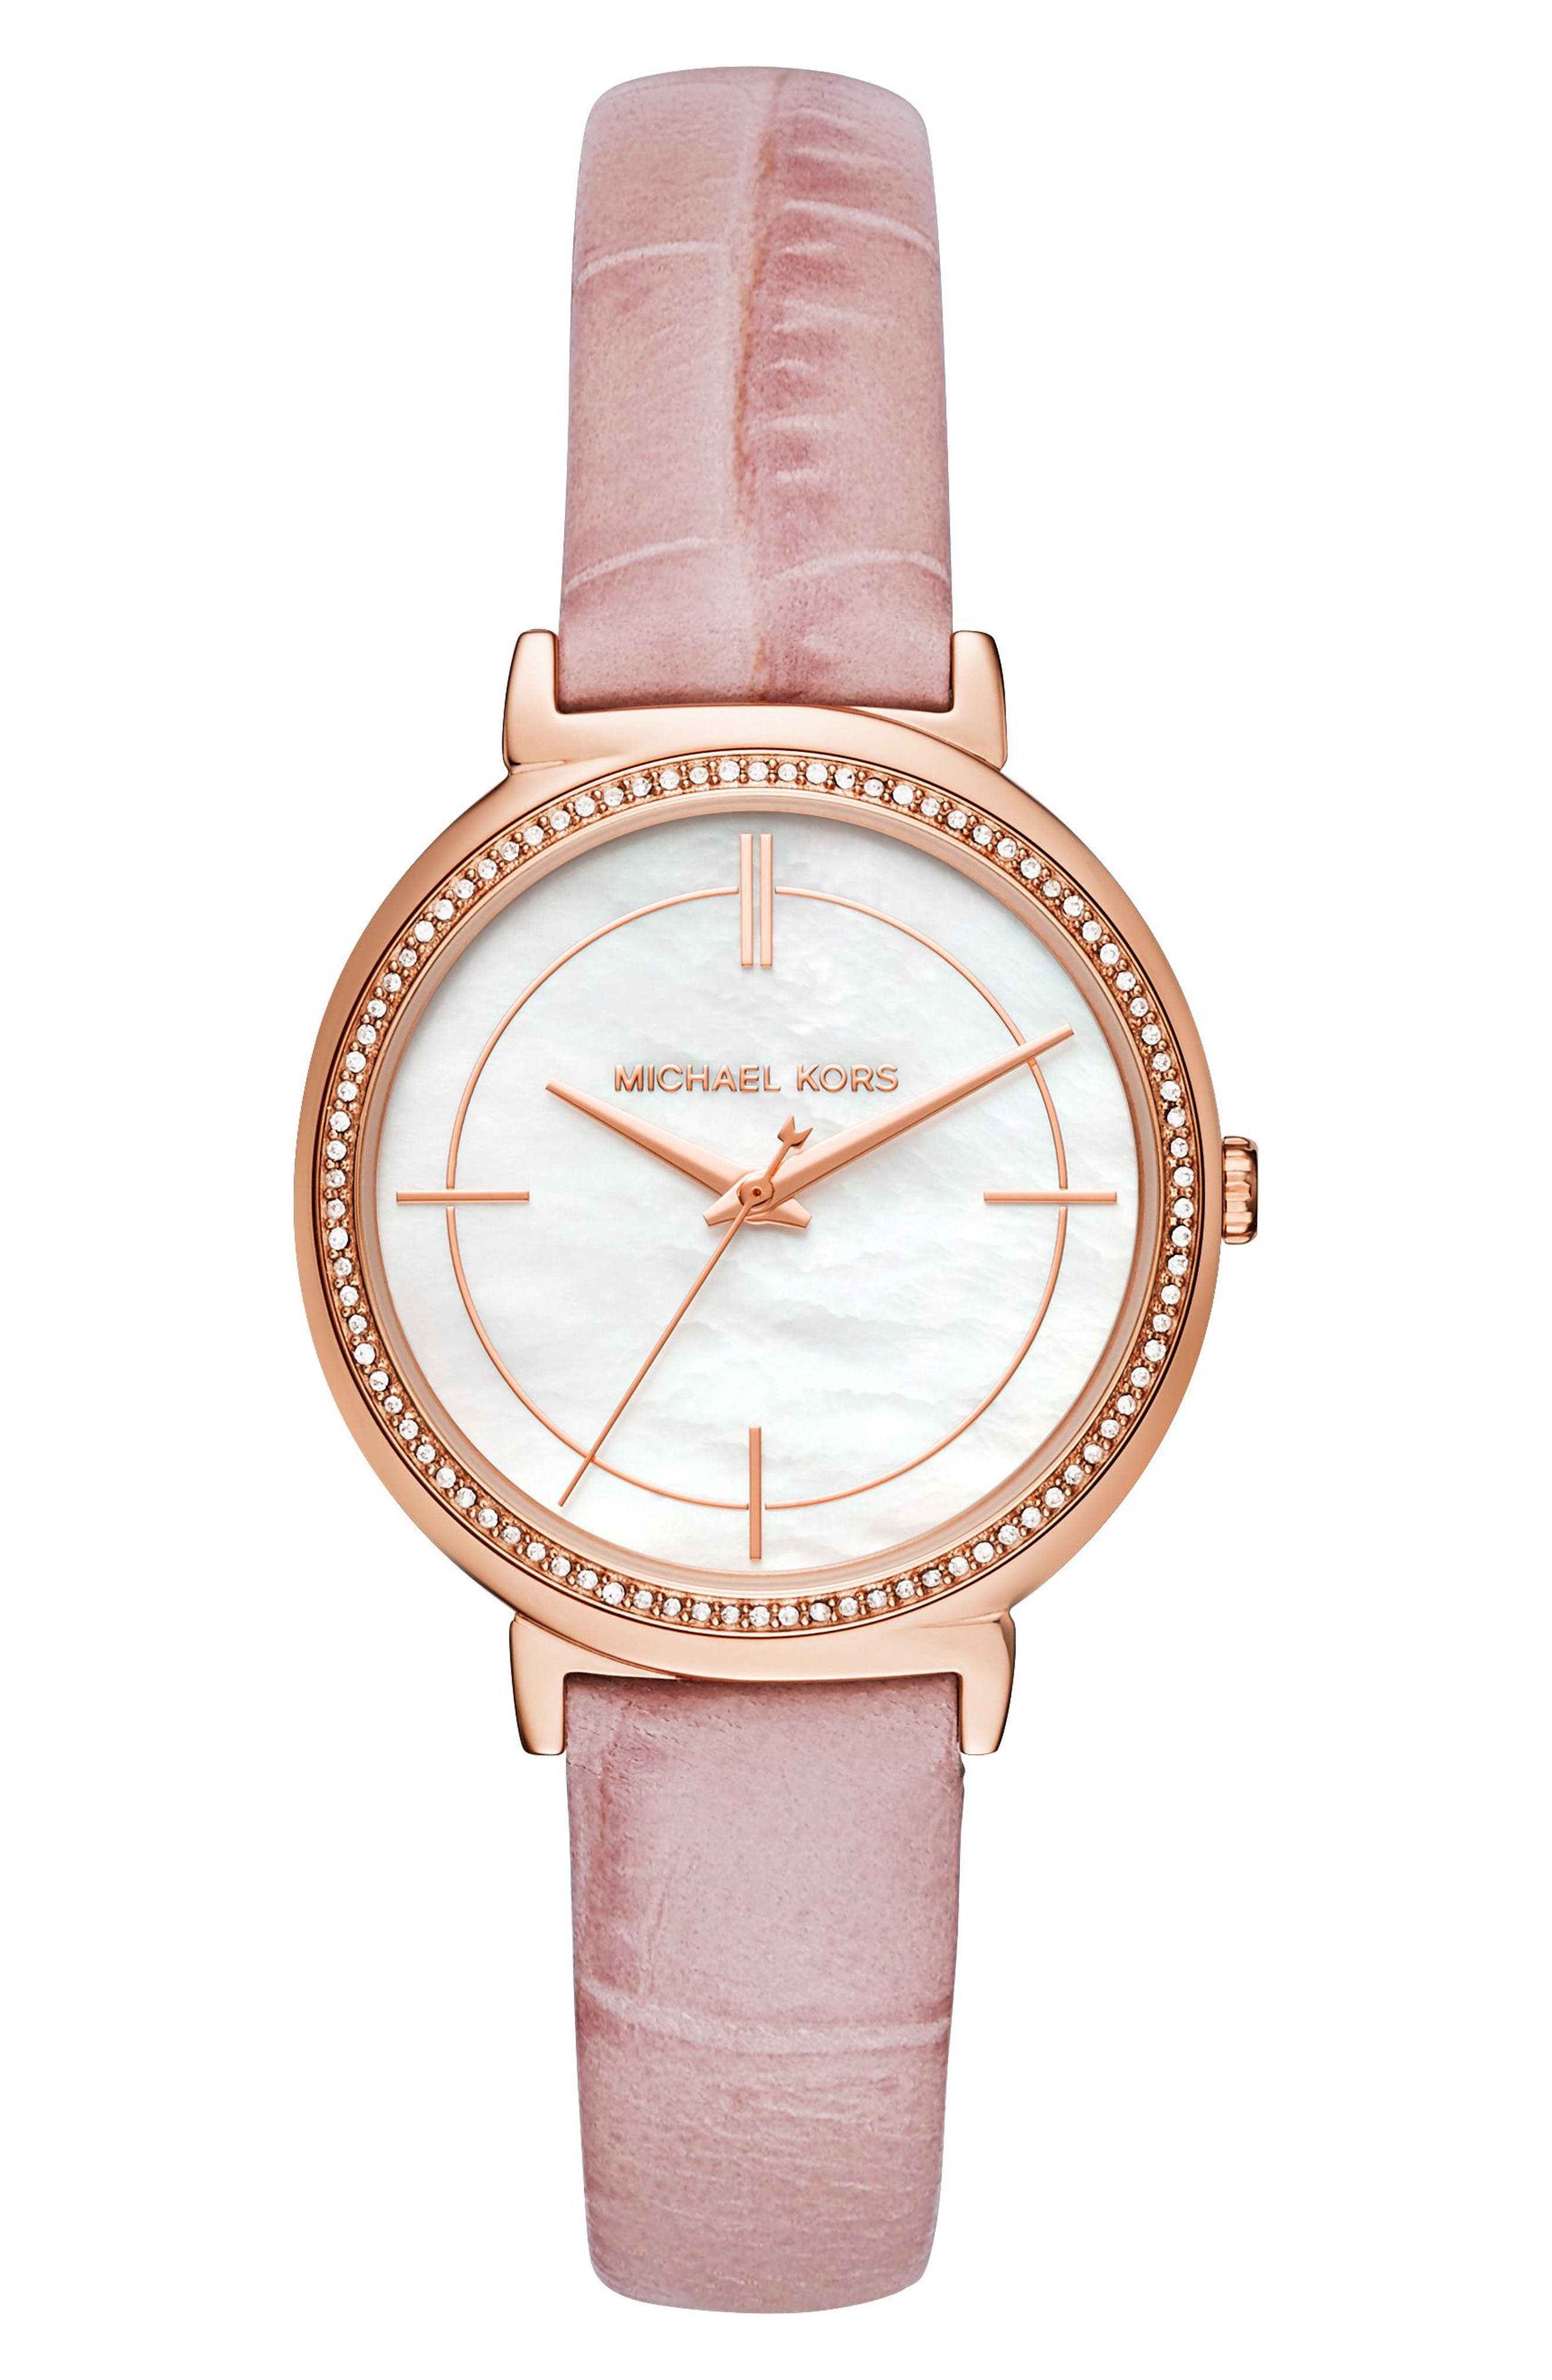 Michael Kors Cinthia Leather Strap Watch, 33mm